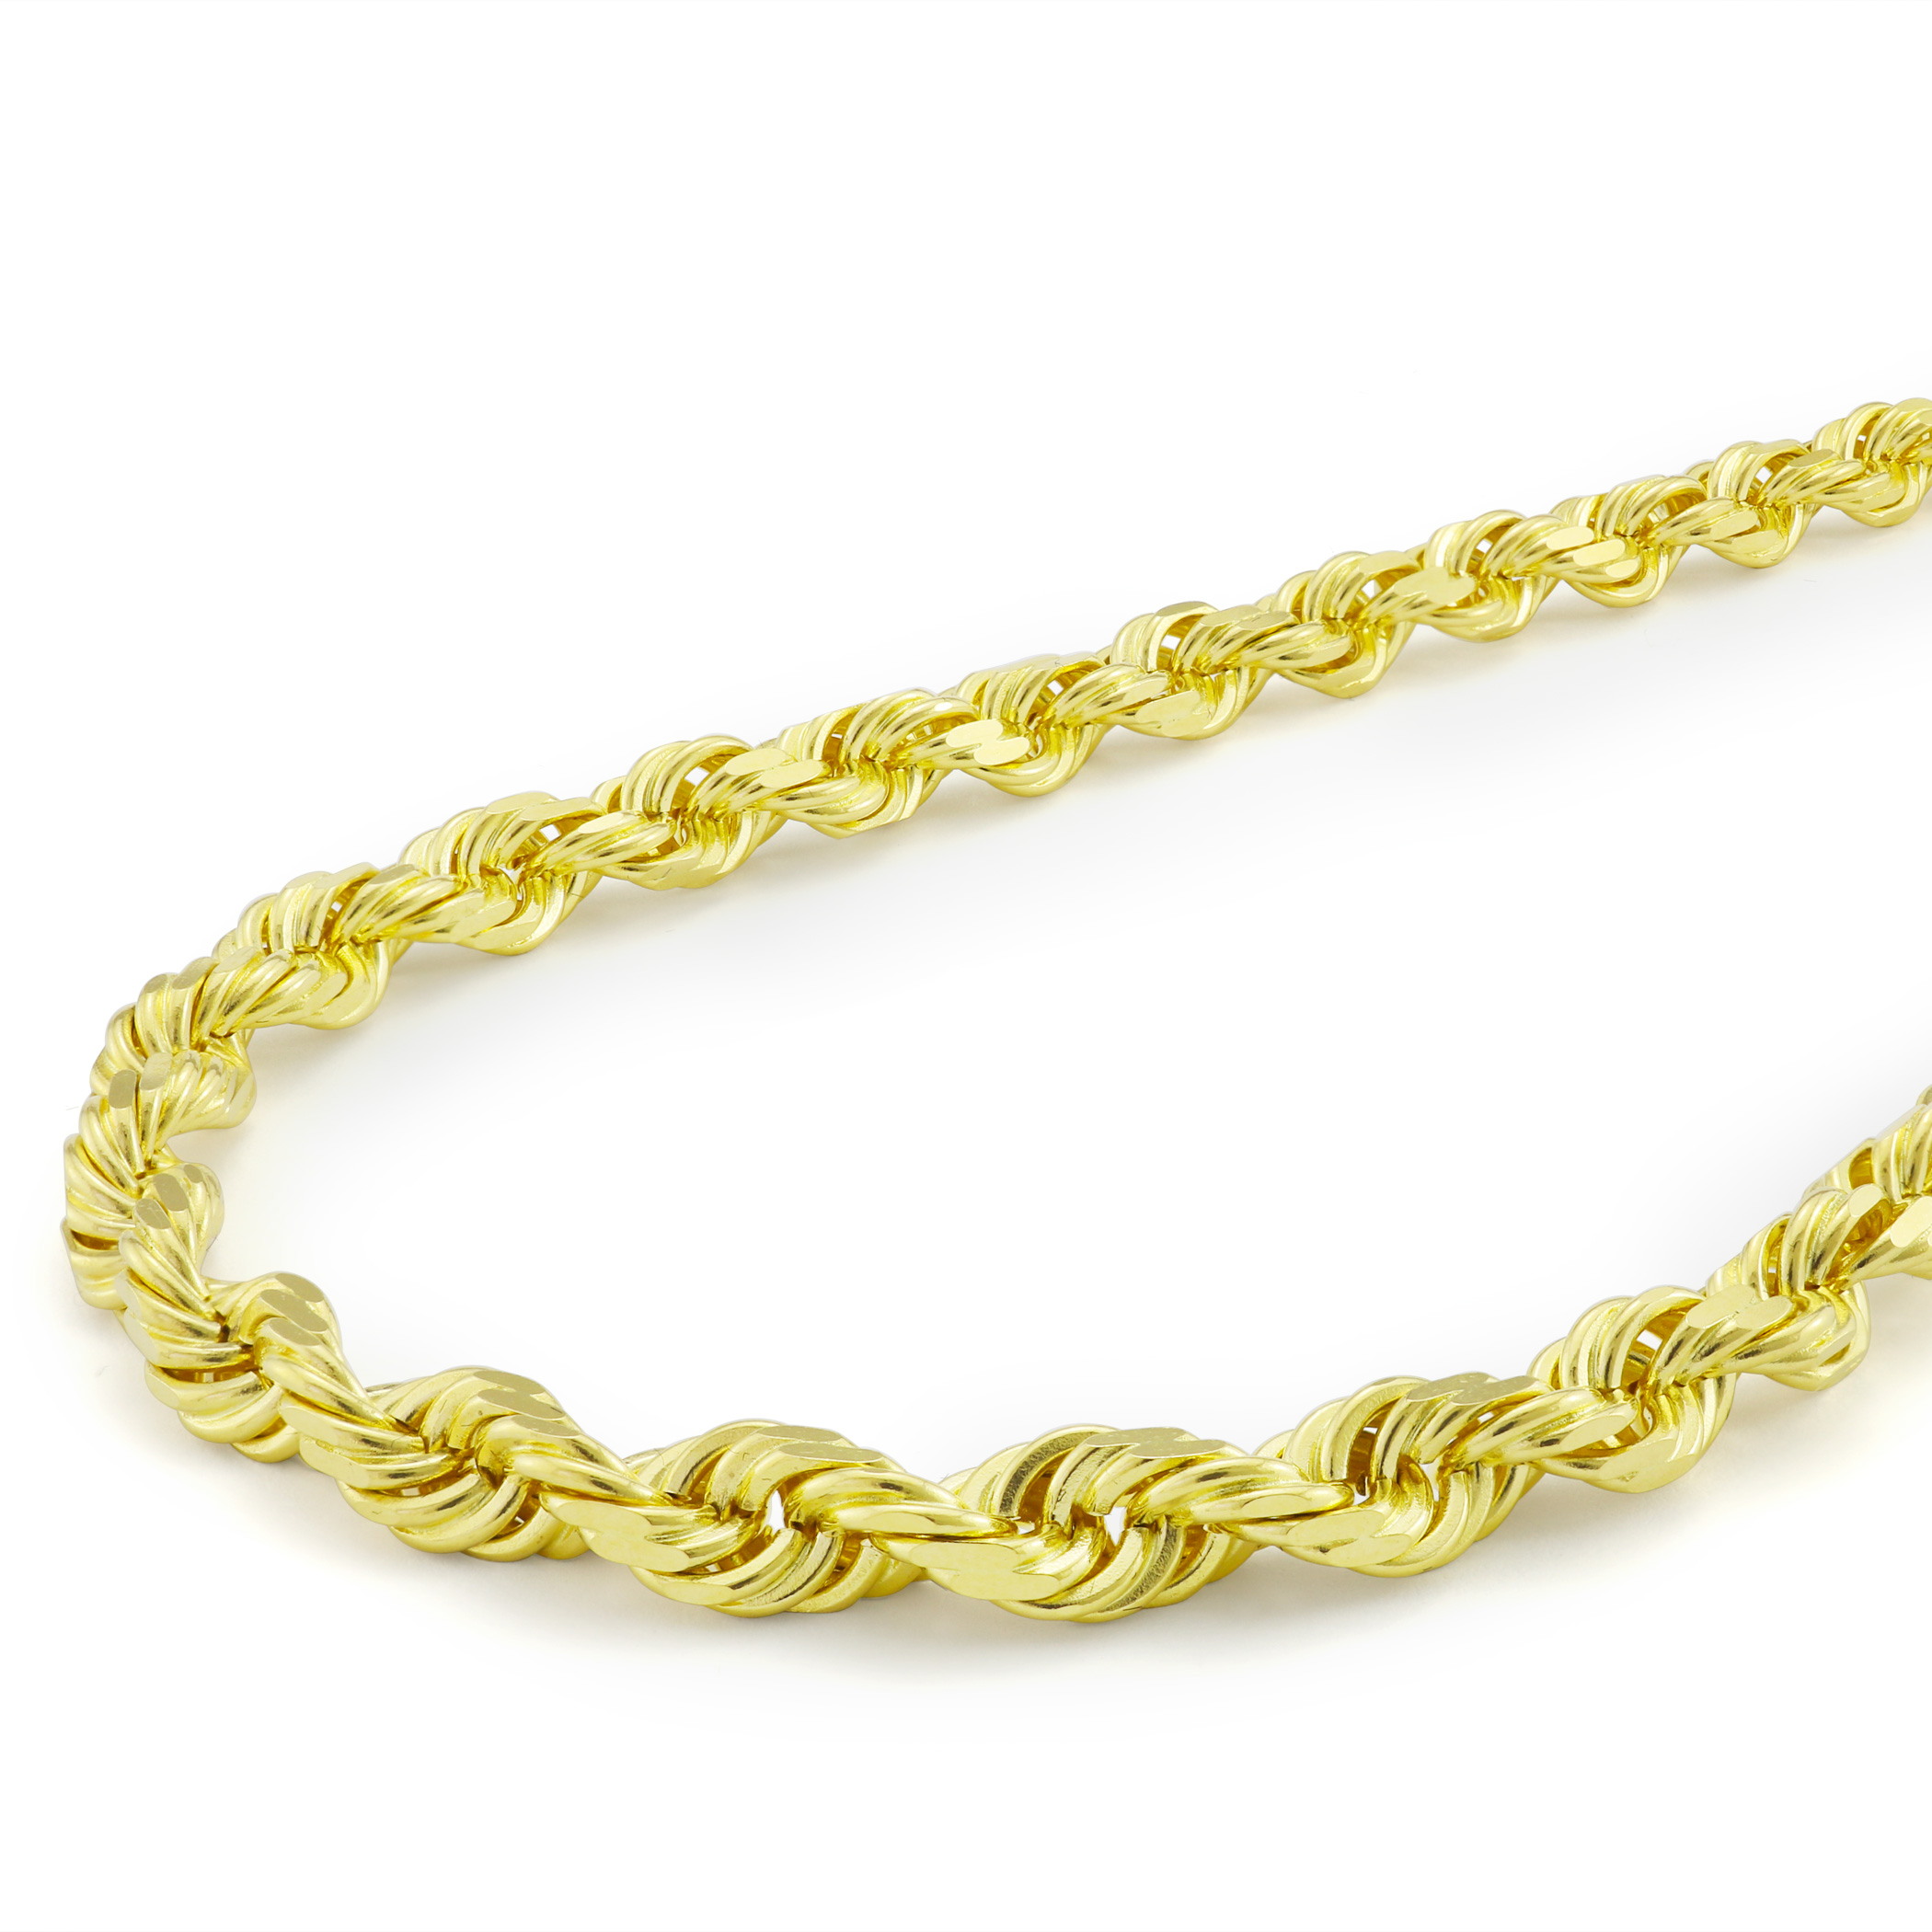 Solid-10k-Yellow-Gold-Mens-Thick-6mm-Diamond-Cut-Rope-Chain-Necklace-20-034-30-034 thumbnail 23